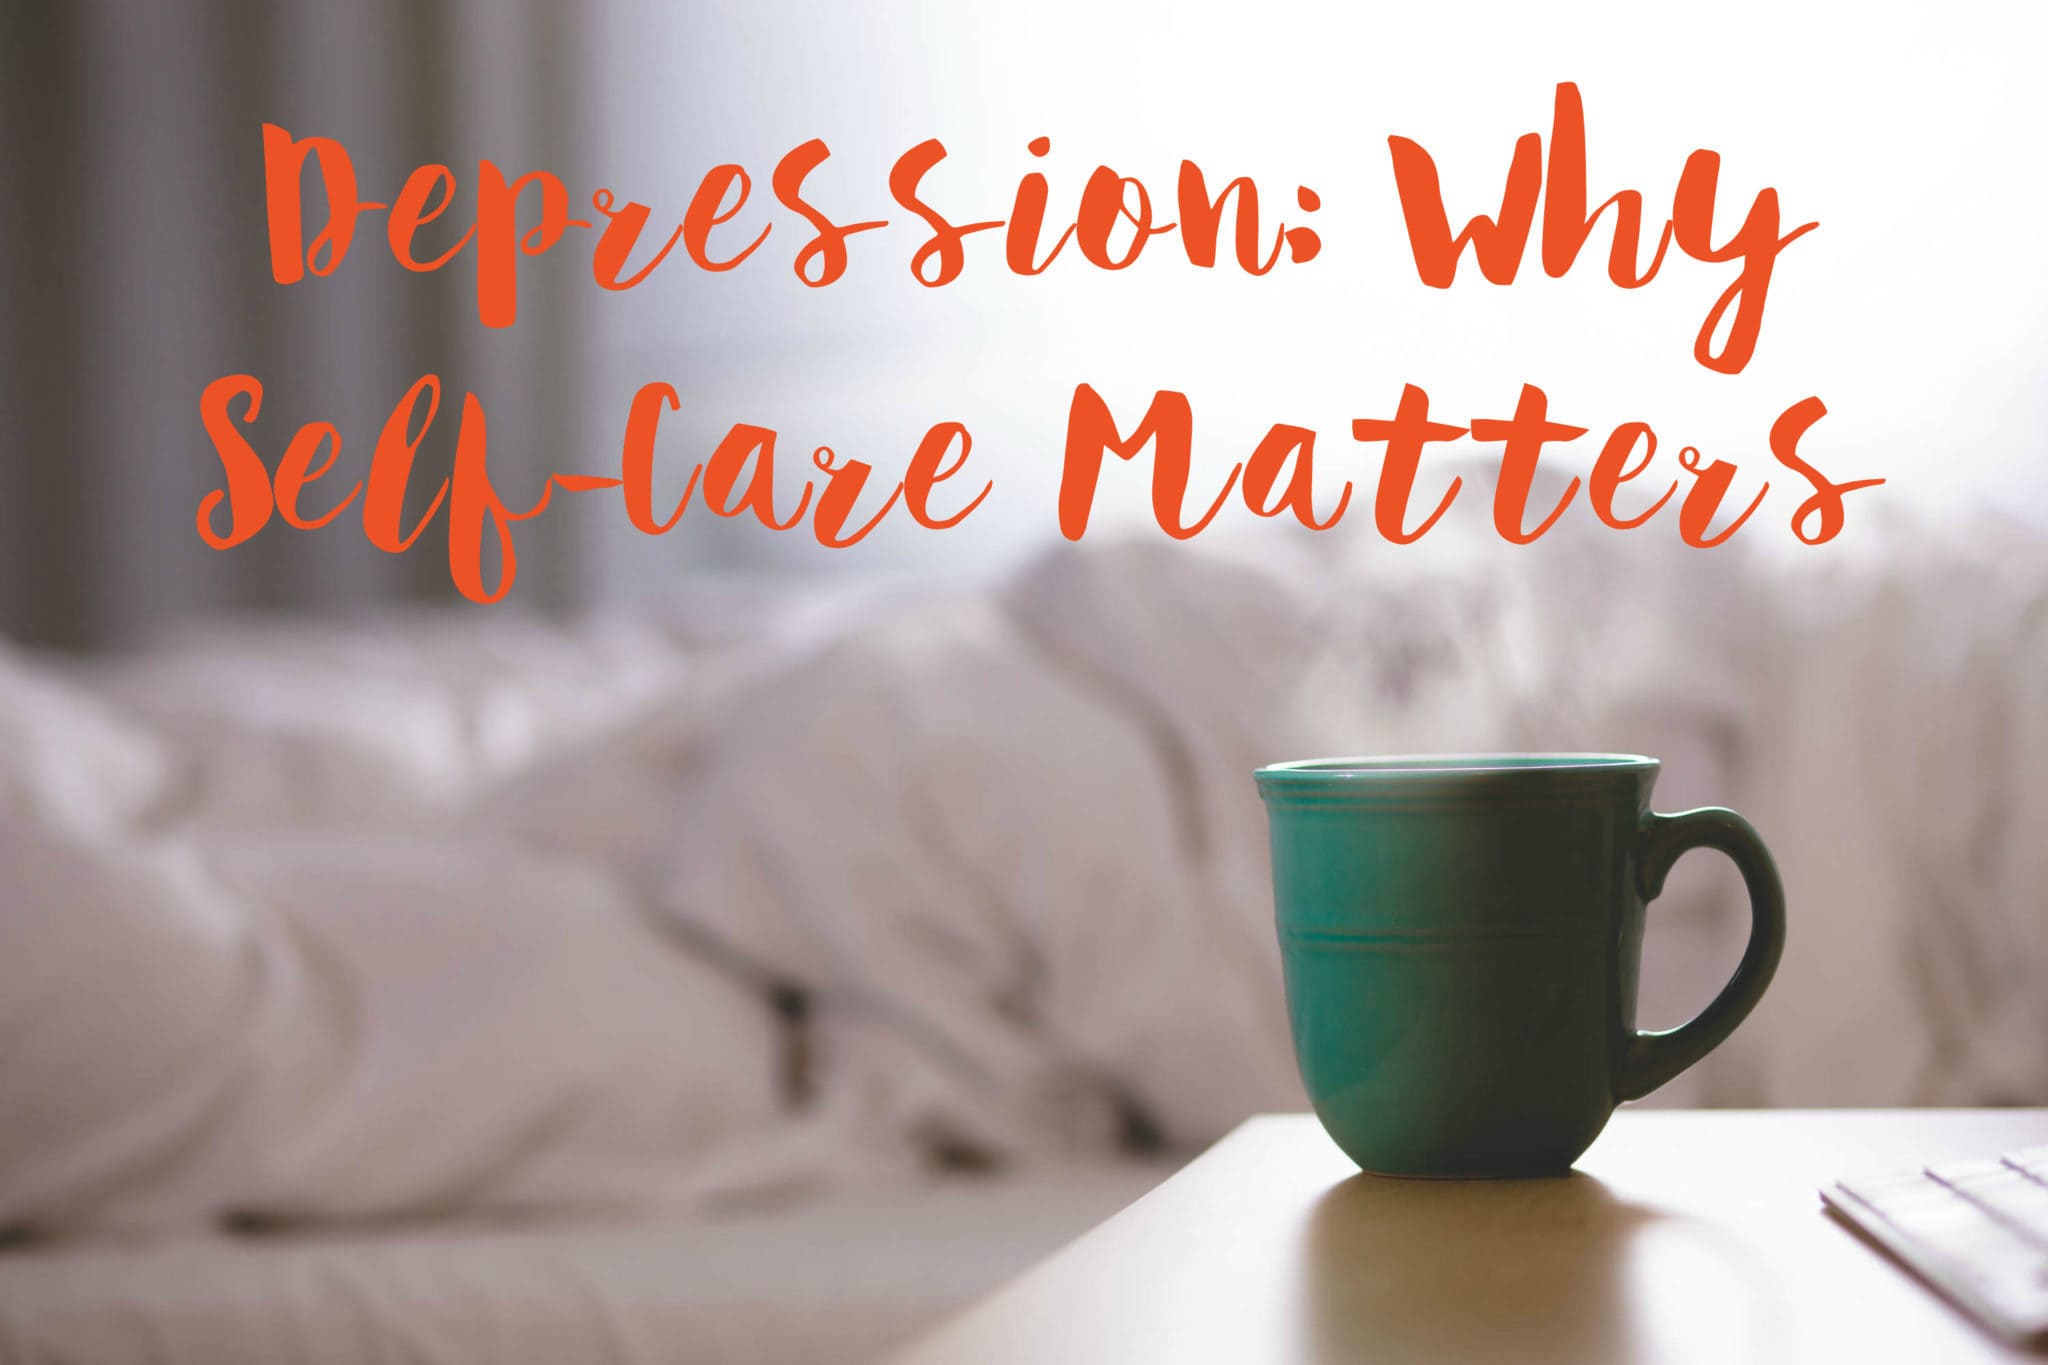 Depression - Why Self-Care Matters